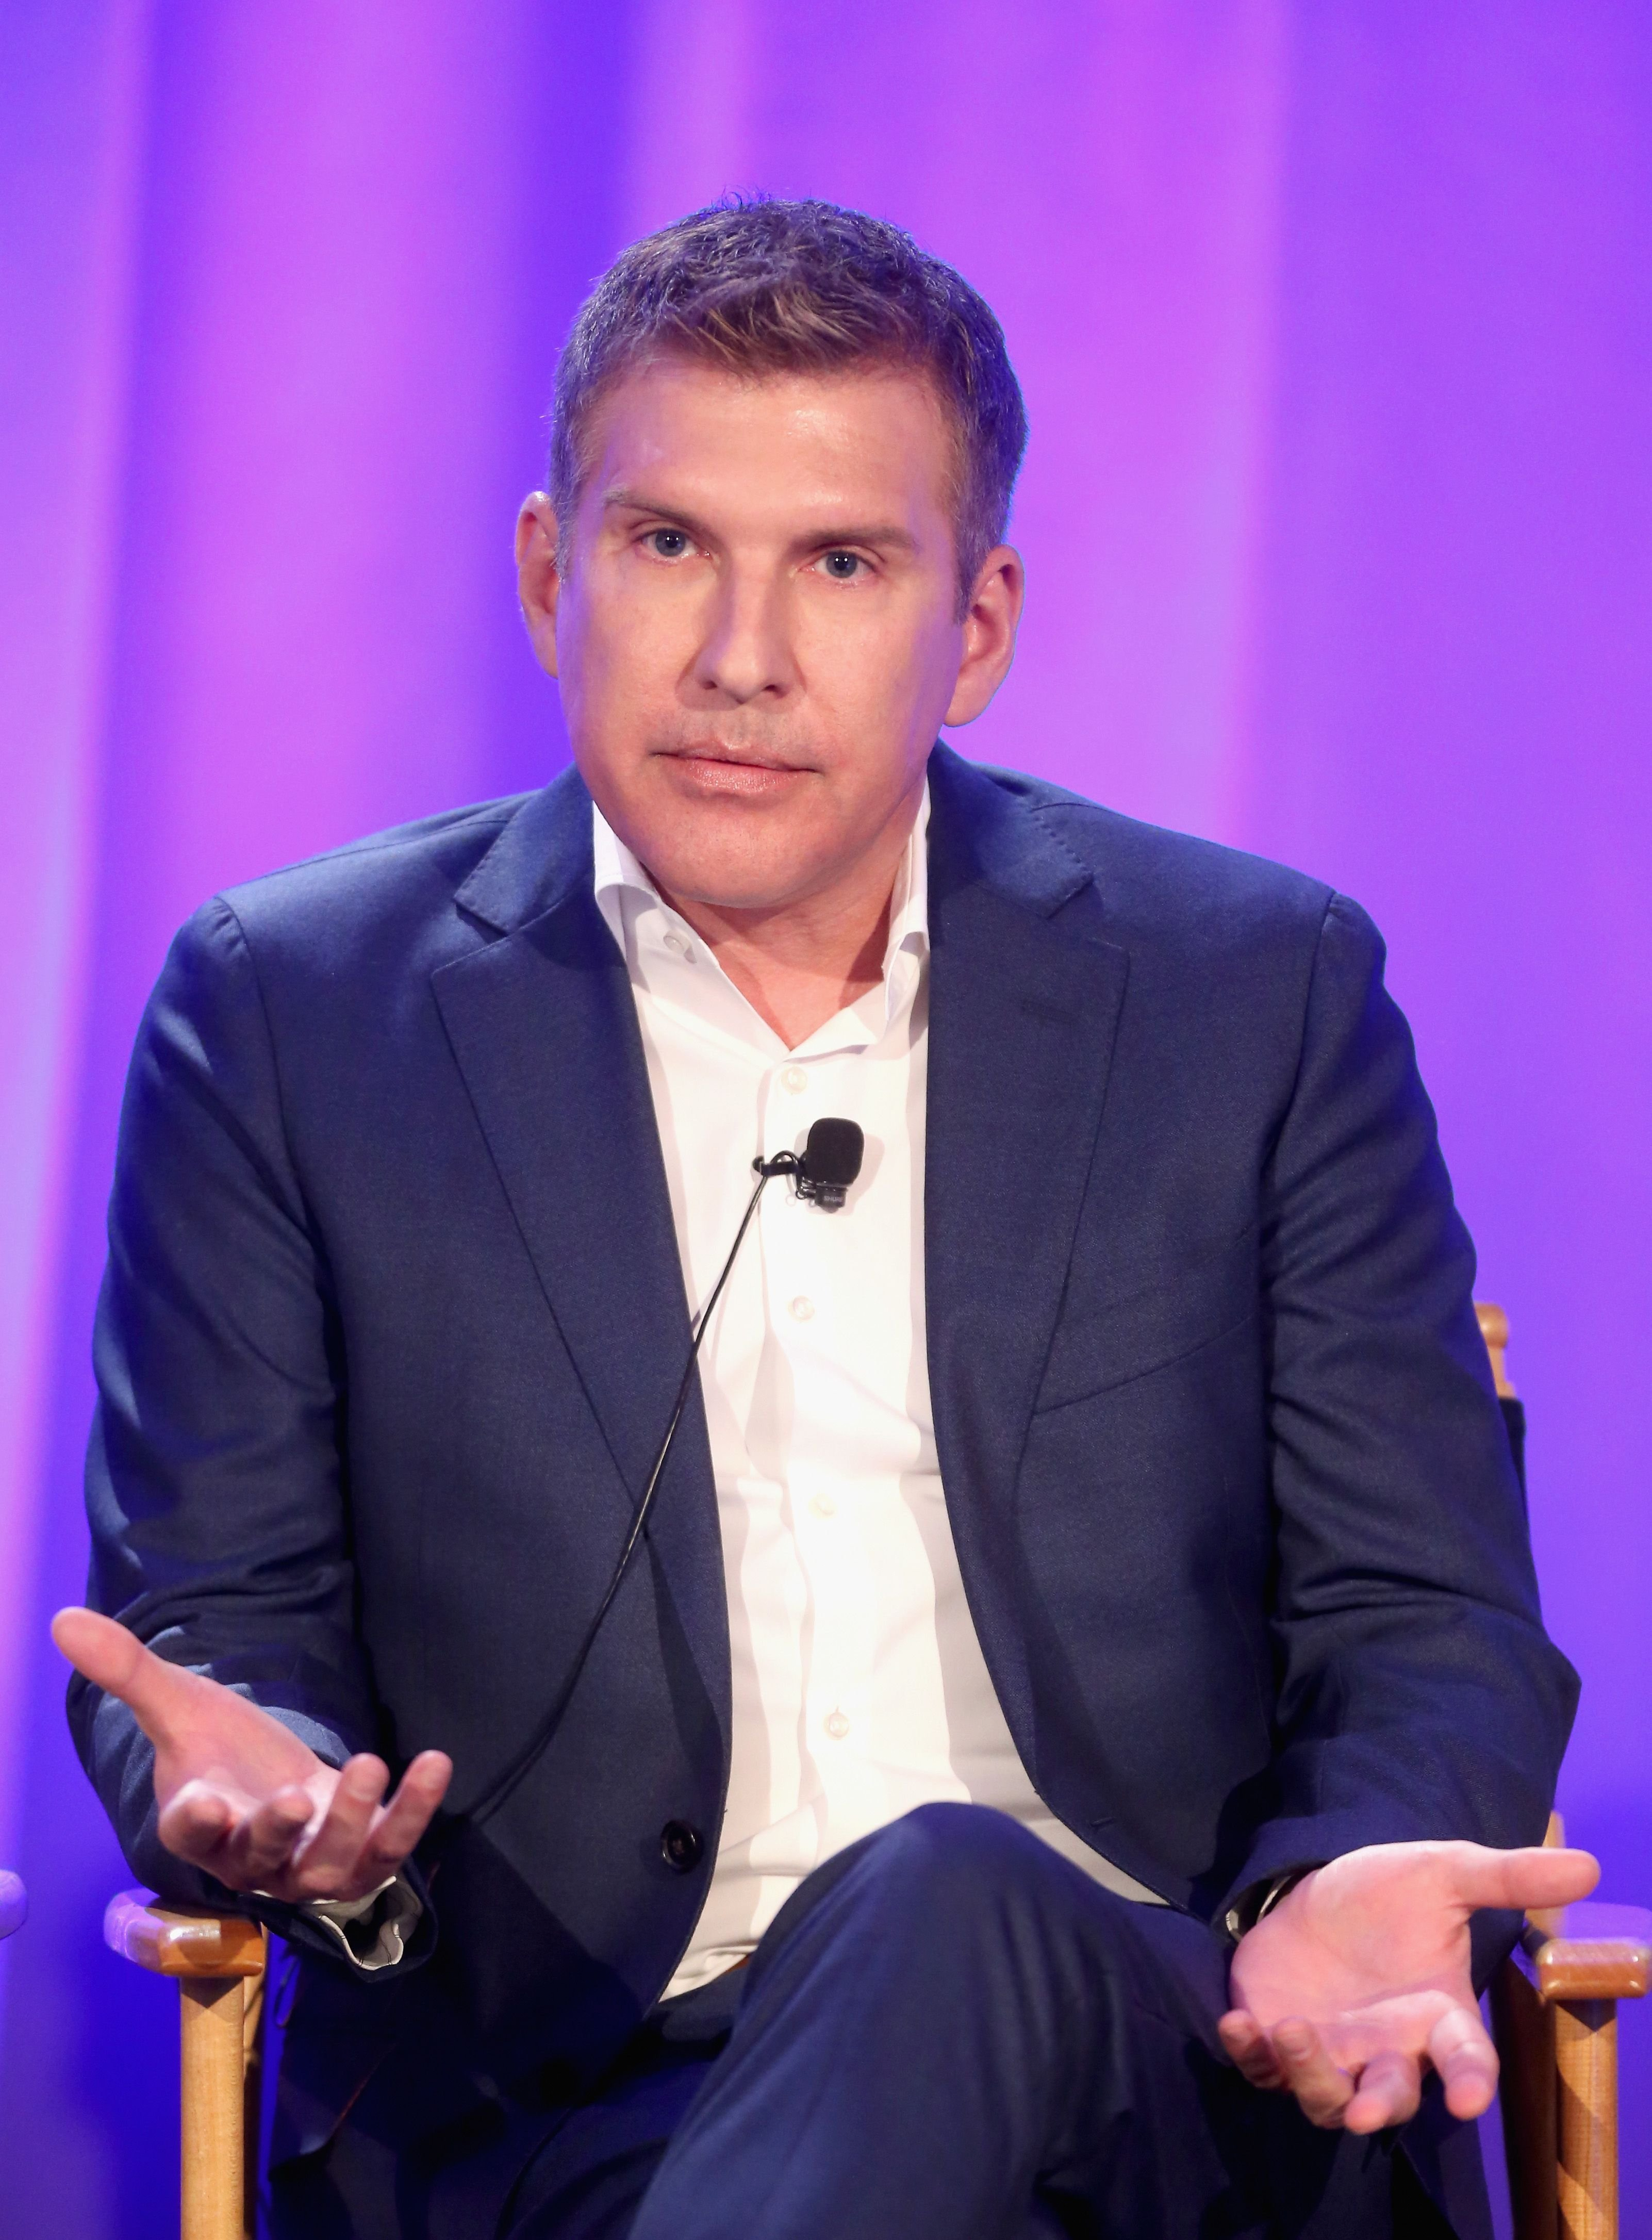 Todd Chrisley speaks onstage at the 'Chrisley Knows Best' panel at the 2016 NBCUniversal Summer Press Day at Four Seasons Hotel Westlake Village on April 1, 2016 | Photo: Getty Images